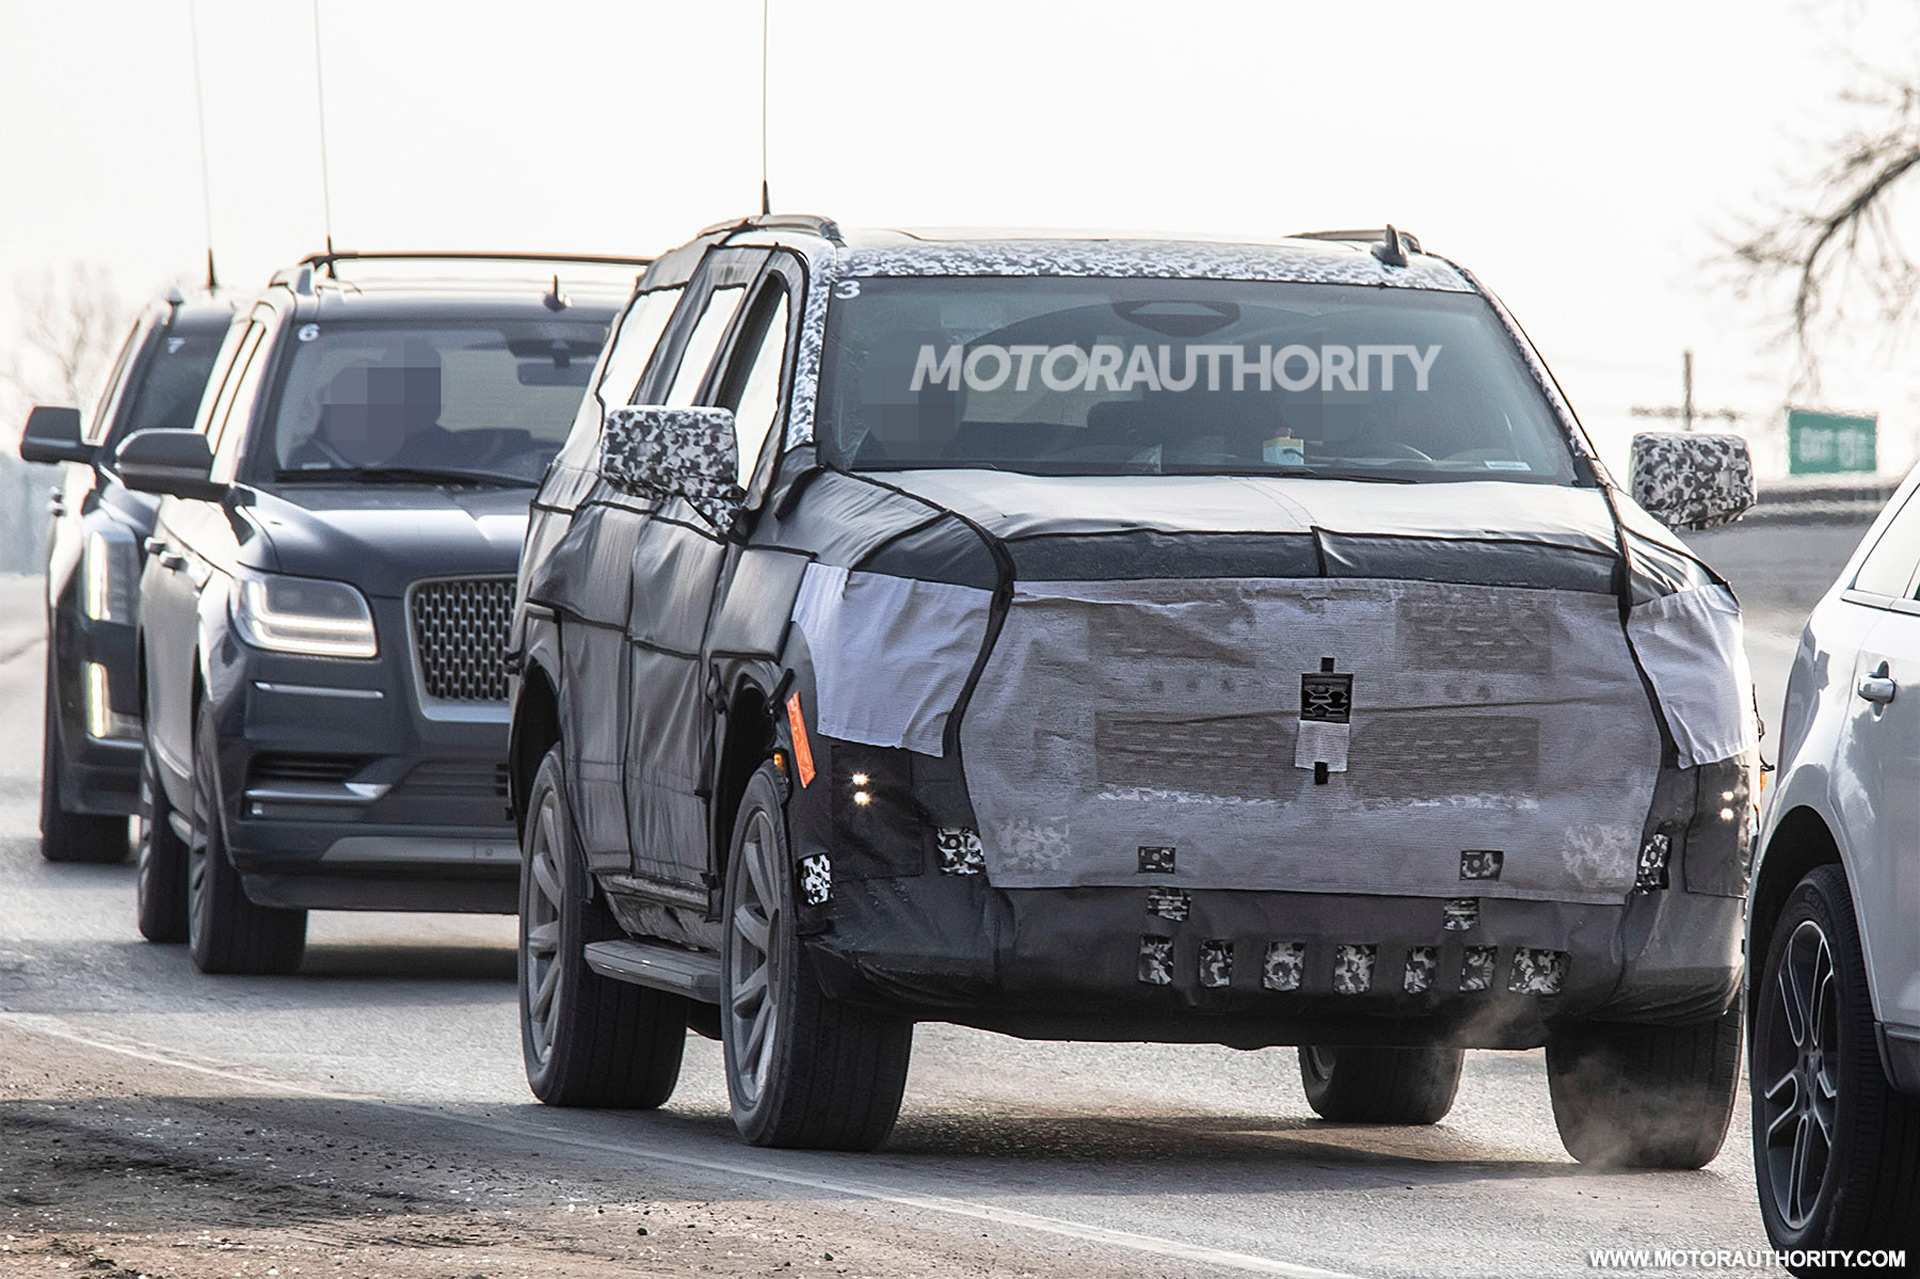 18 Concept of Cadillac Spy Shots Review by Cadillac Spy Shots